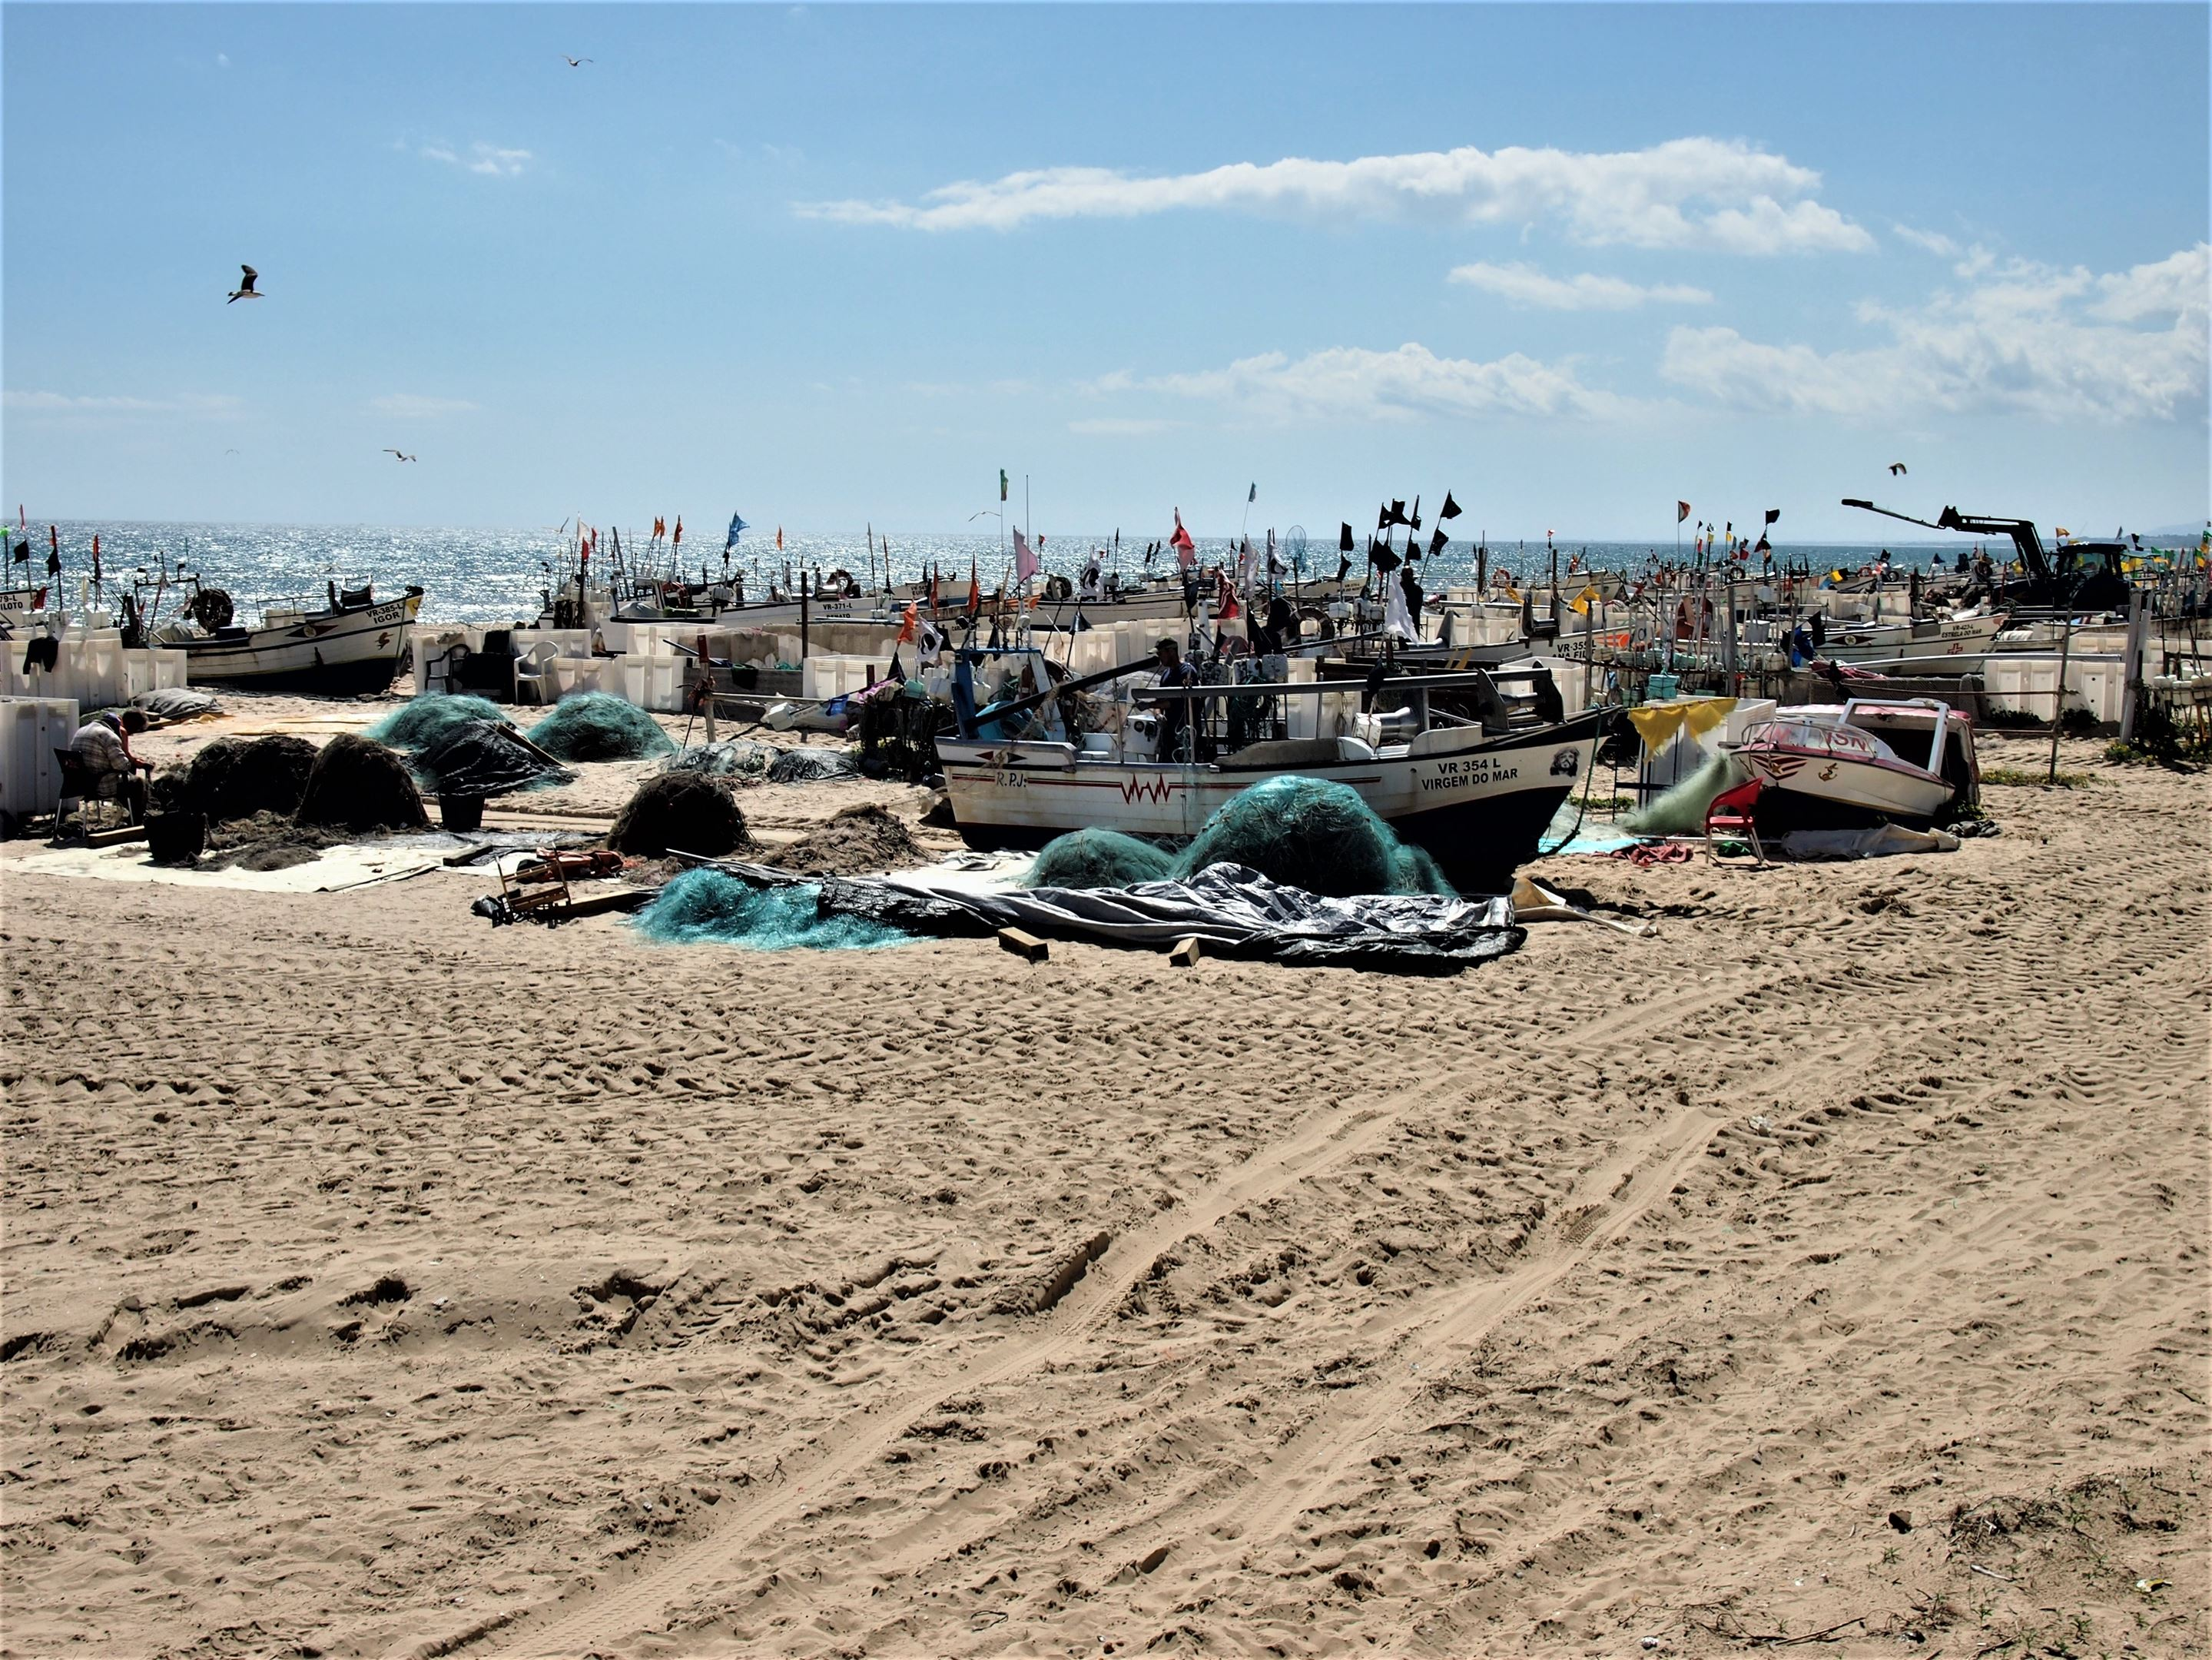 The fishing boats at Praia de Monte Gordo